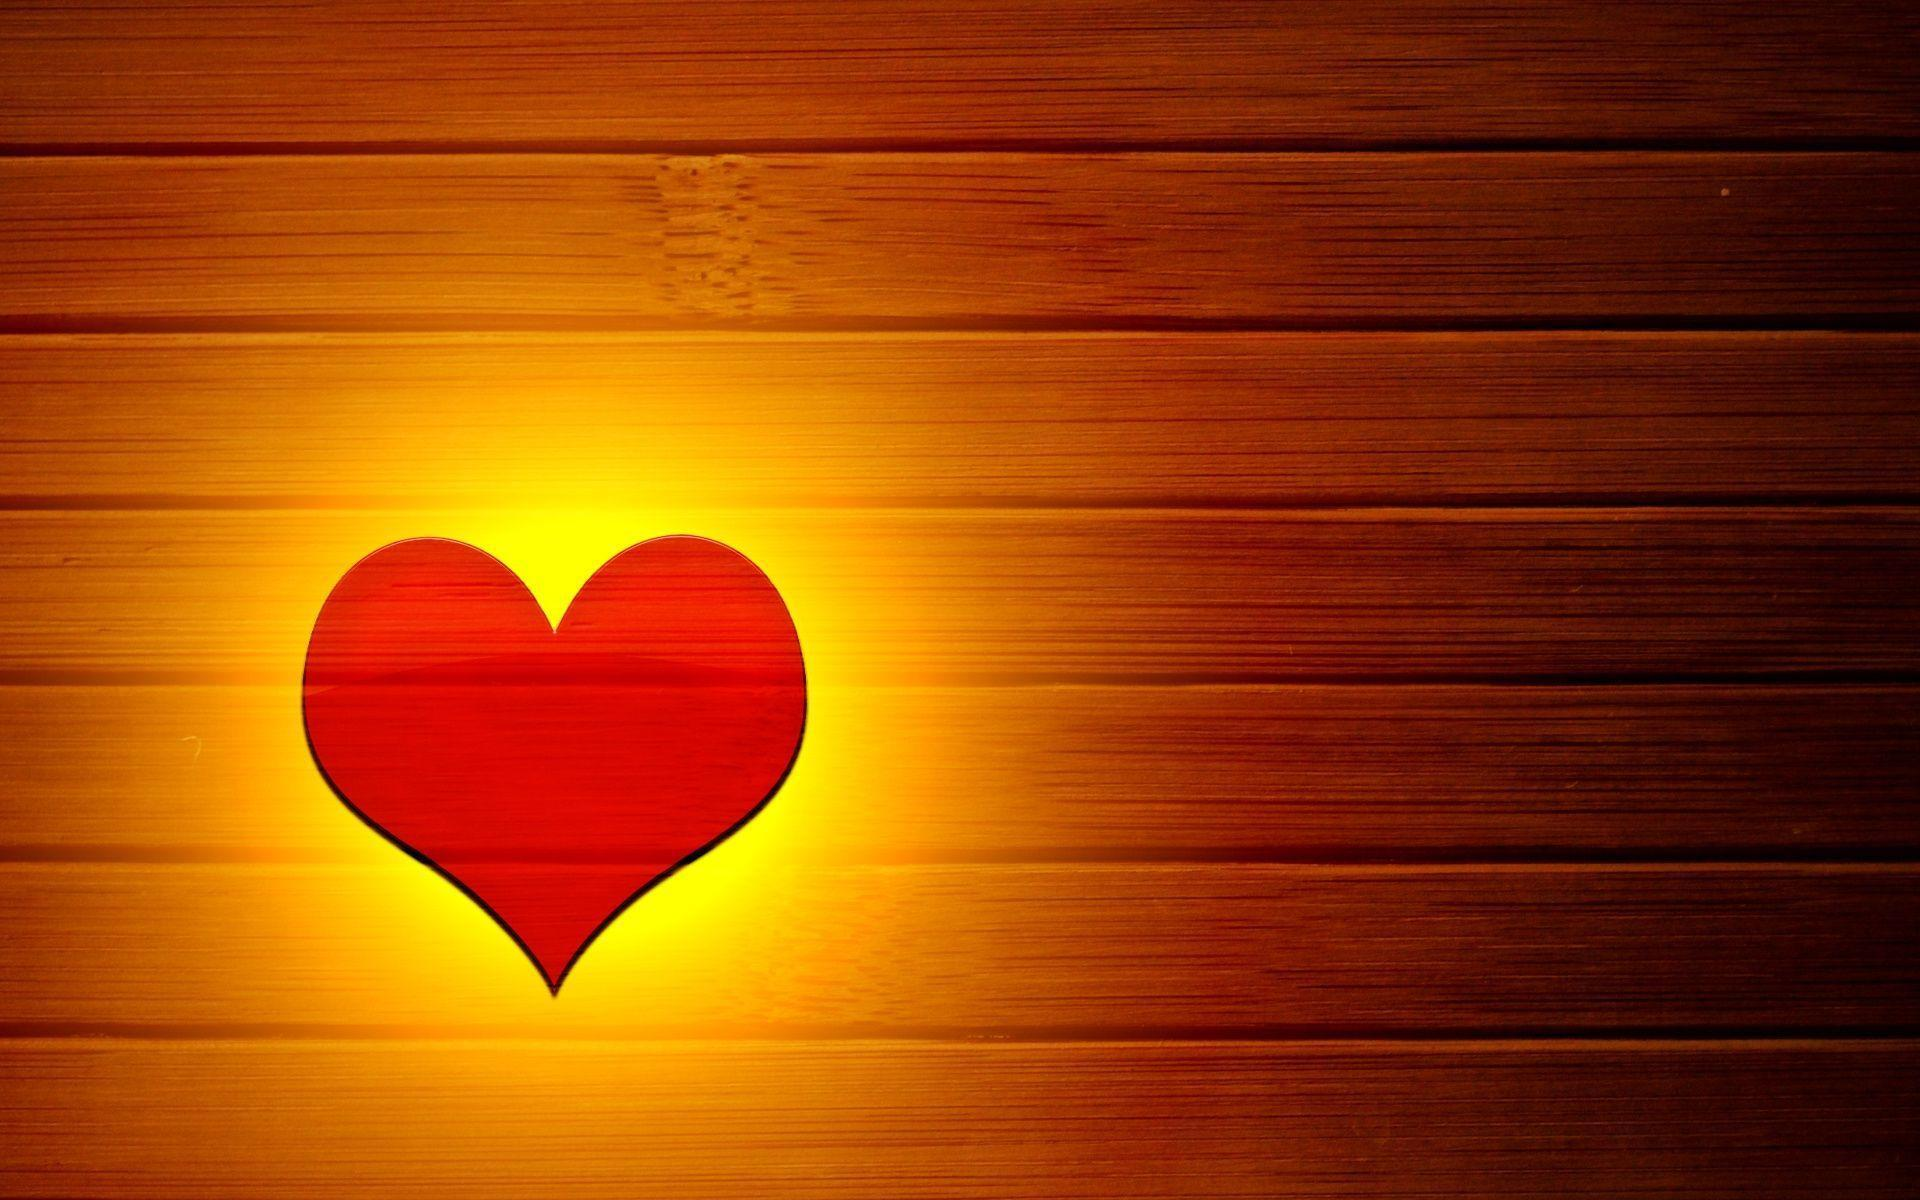 Best Love Wallpapers Tumblr : Love Backgrounds Wallpapers - Wallpaper cave